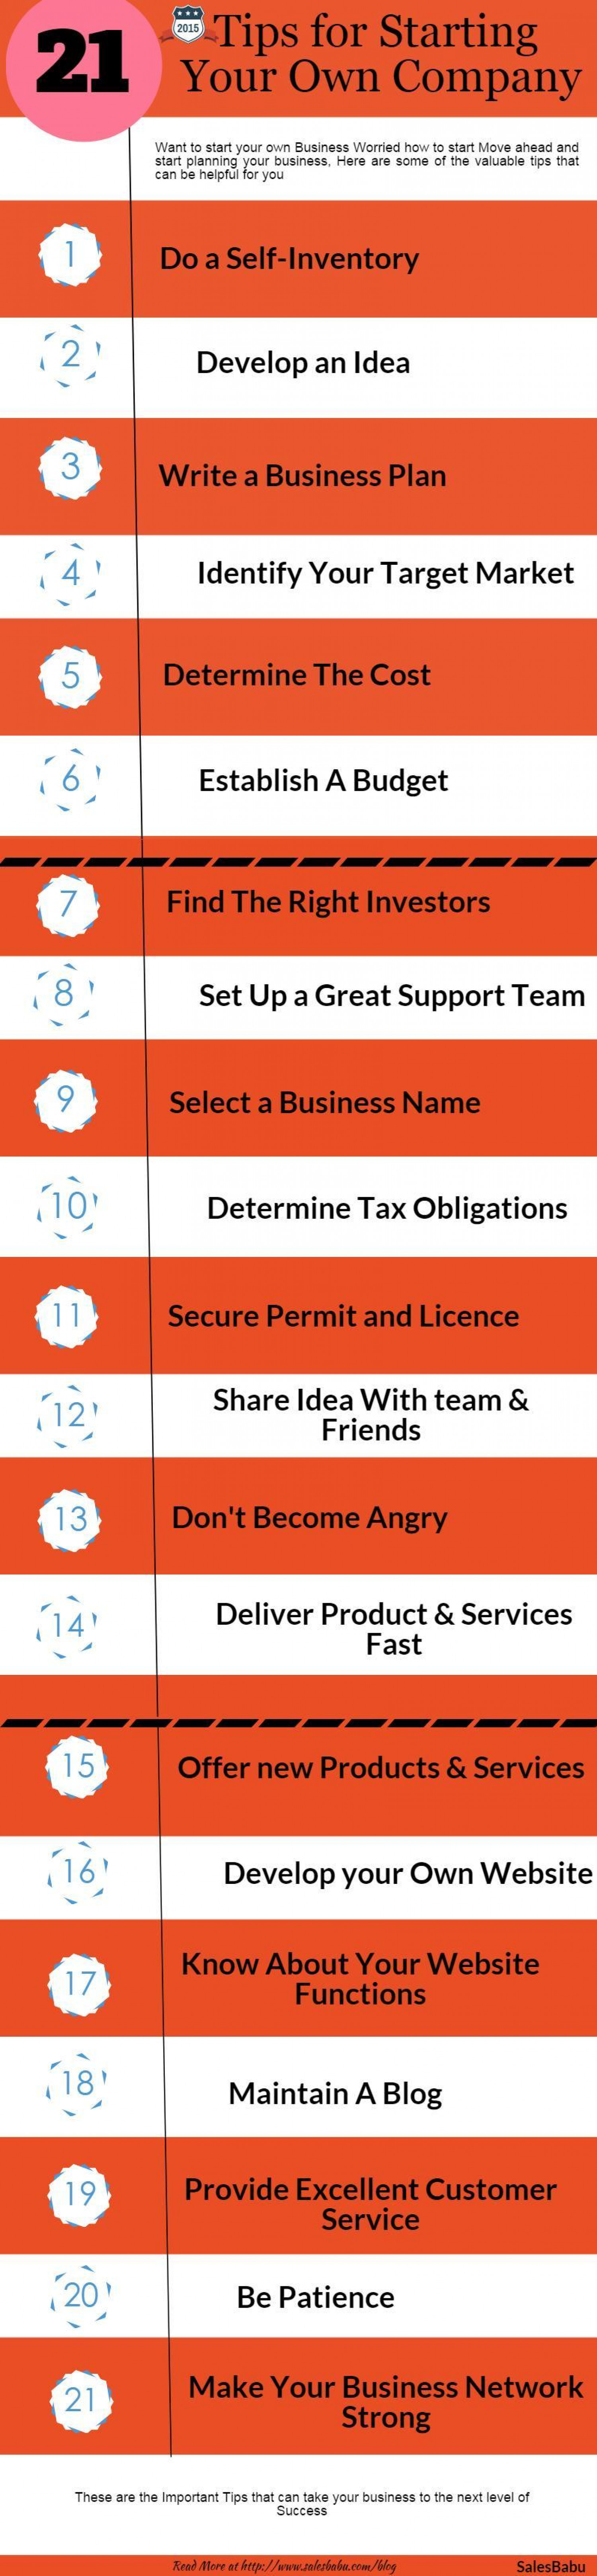 21 Tips for Starting Your Own Company Infographic